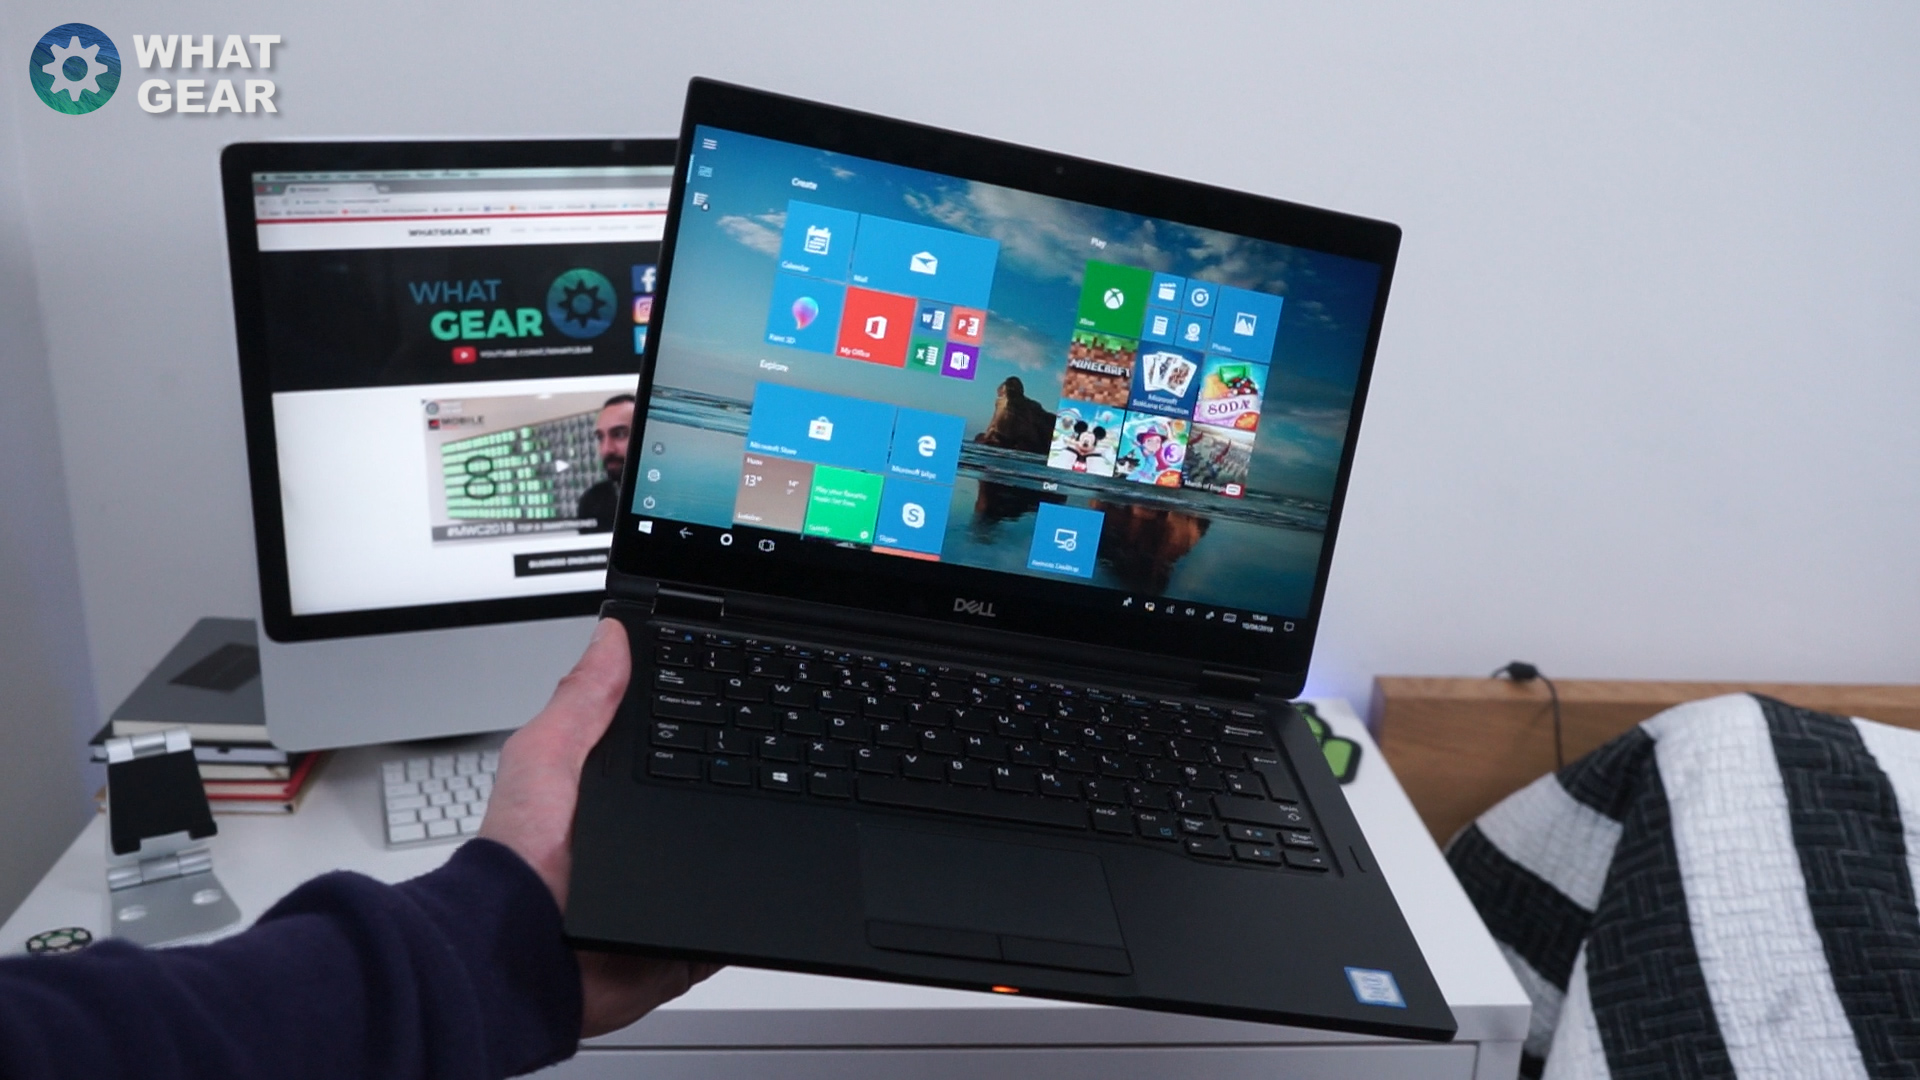 dell xps 13 review.jpg